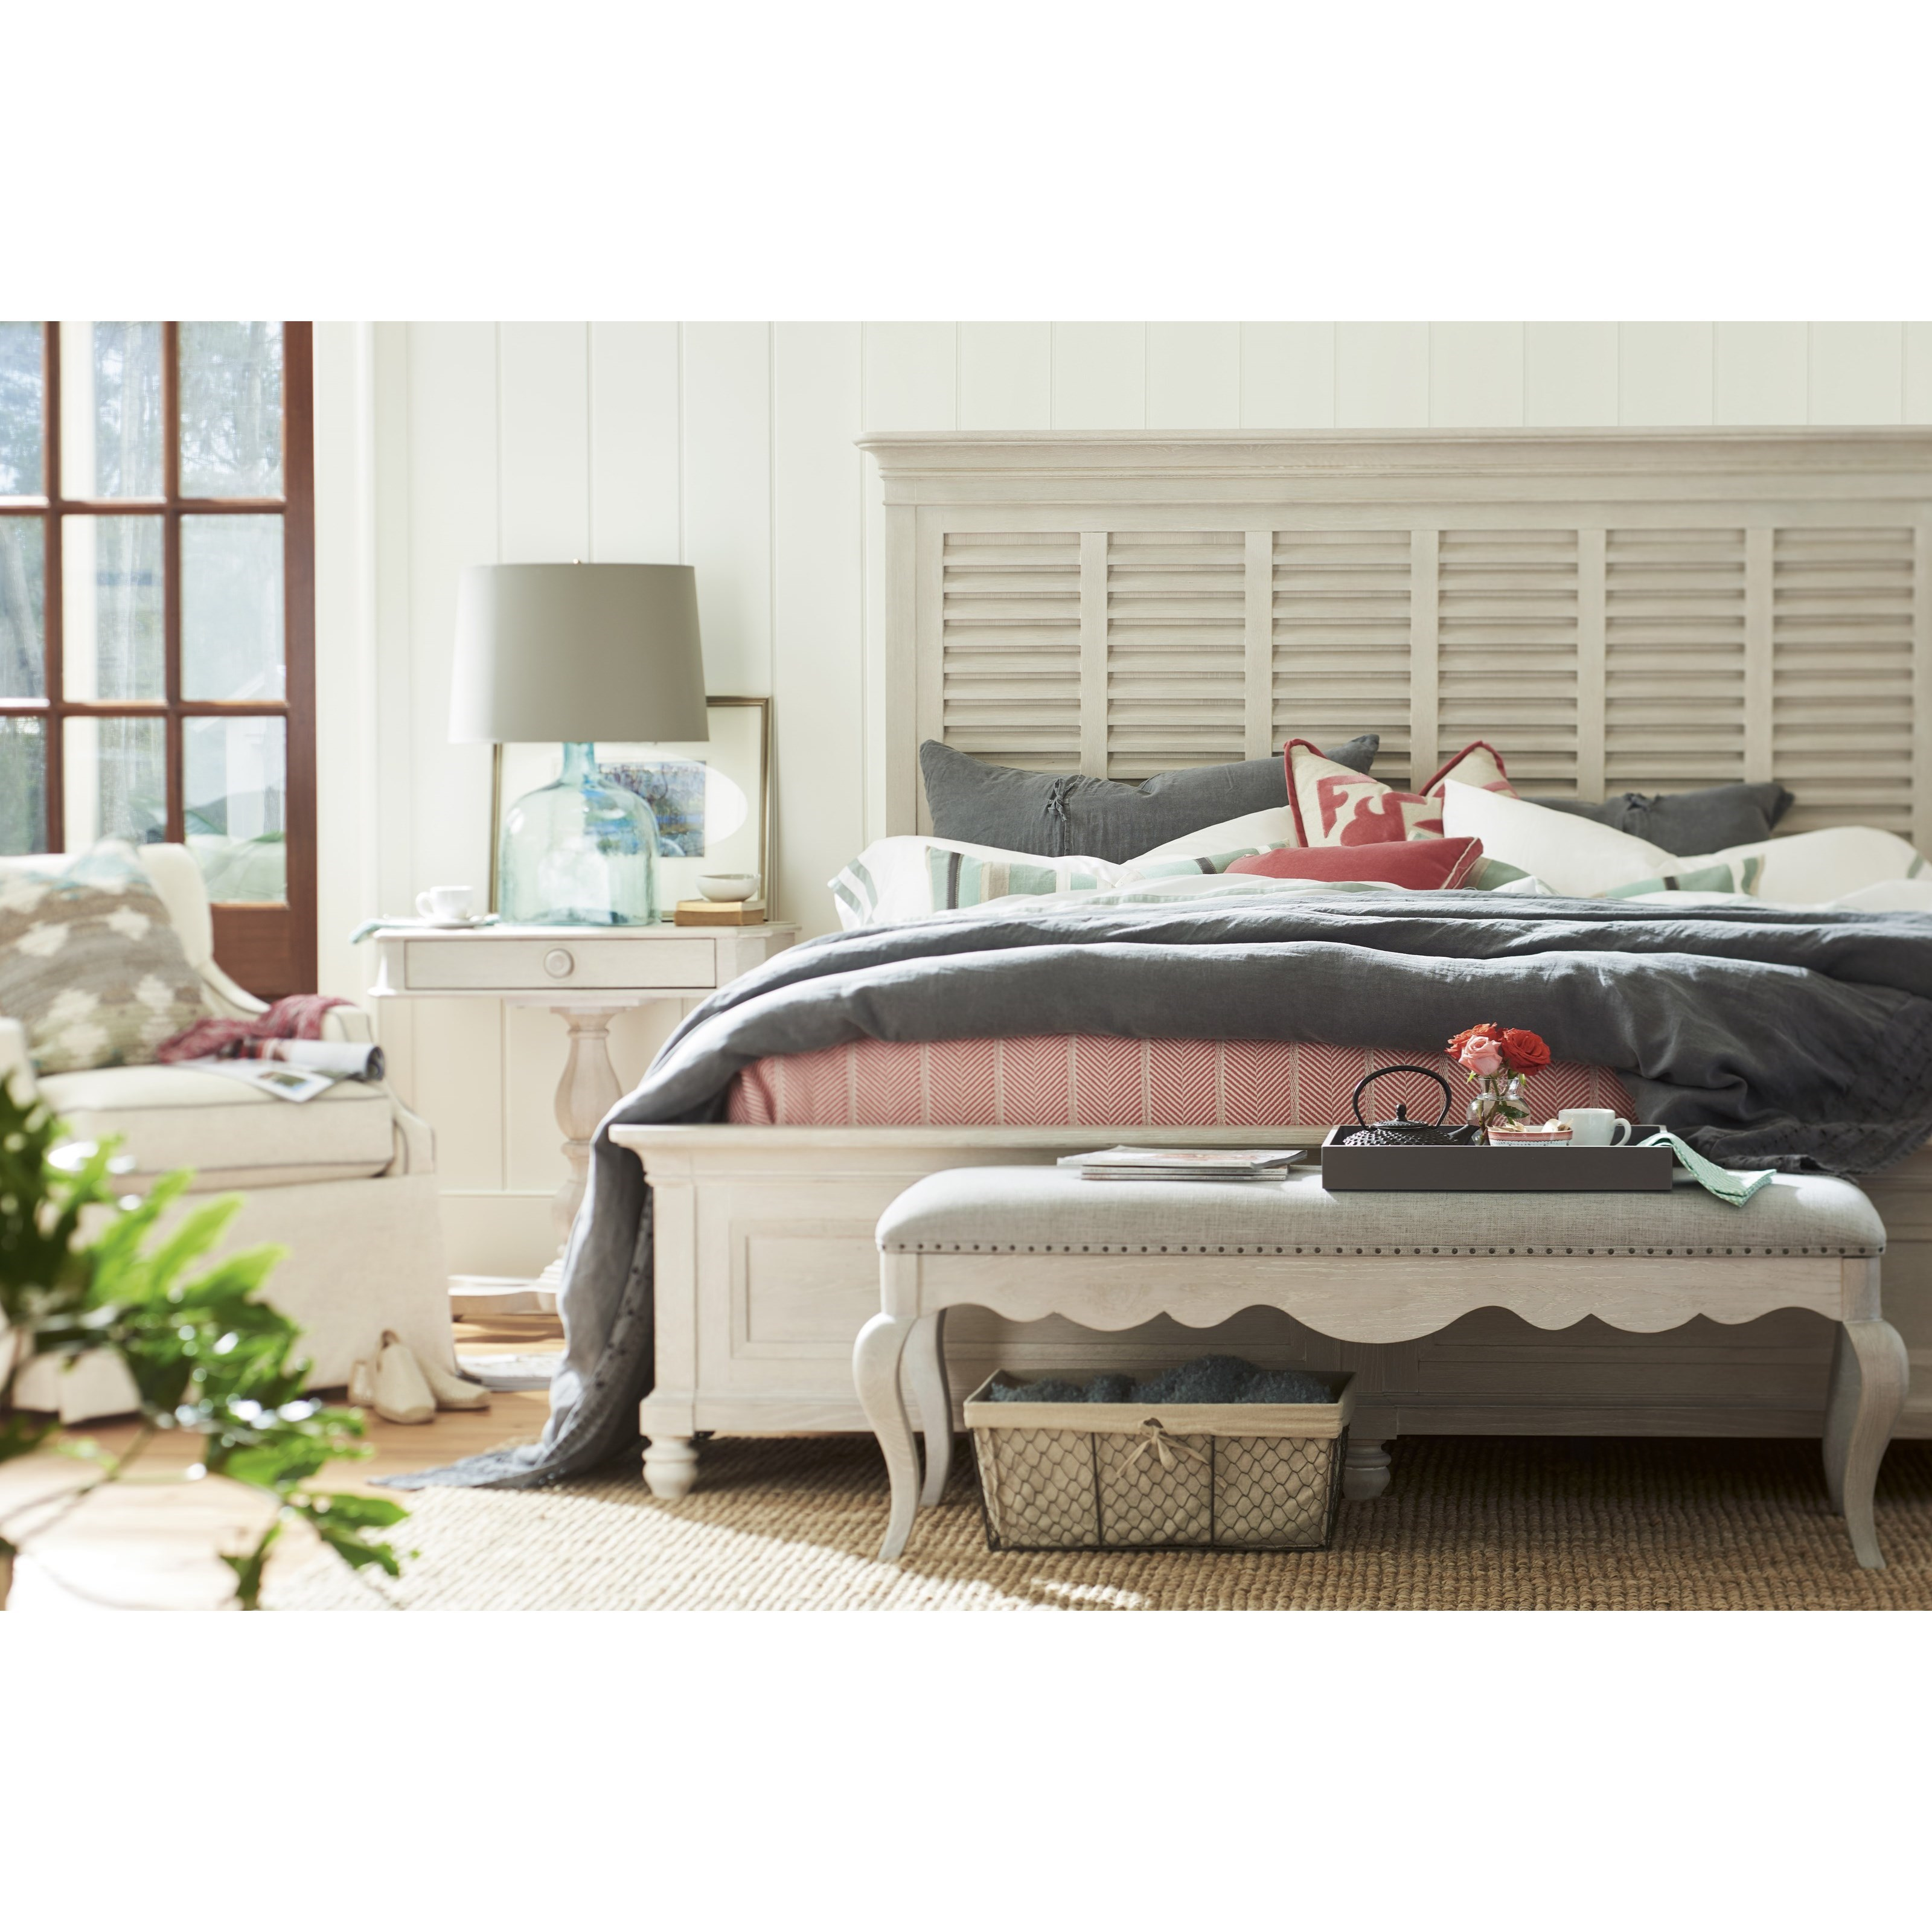 Paula Deen By Universal Bungalow 795220b King Cottage Bed